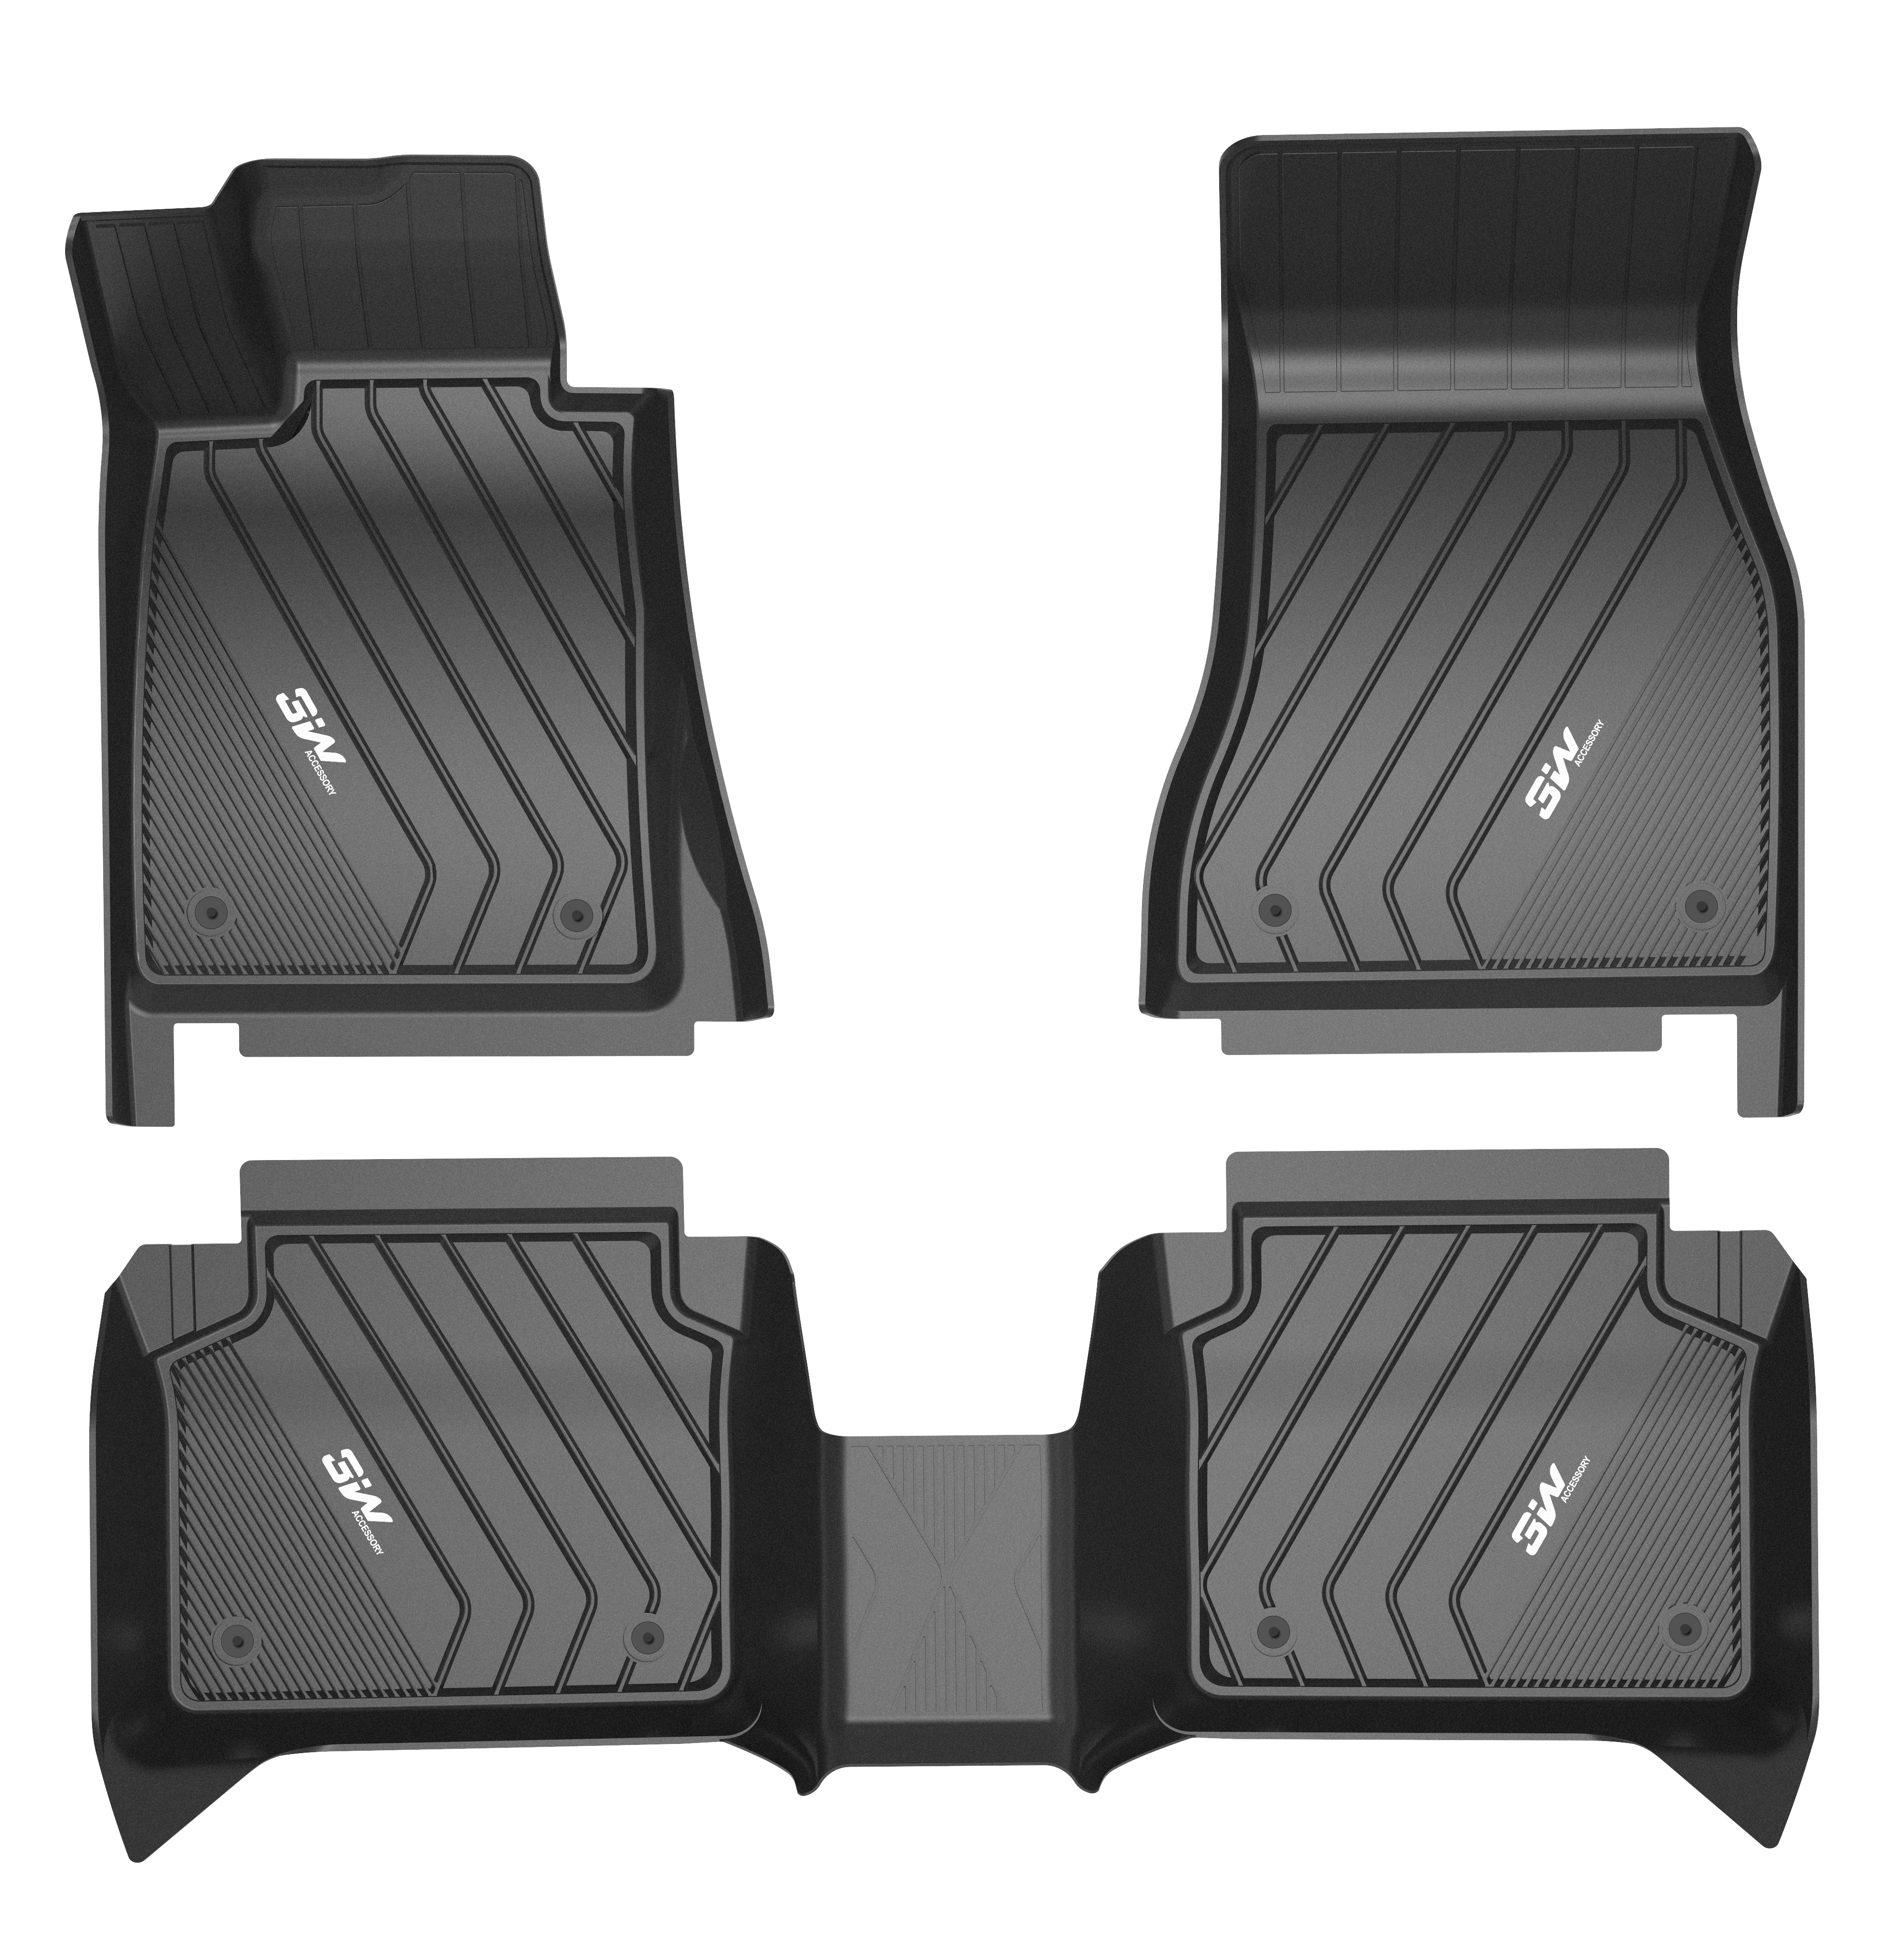 Comparing the TPE and TPO Floor Mats